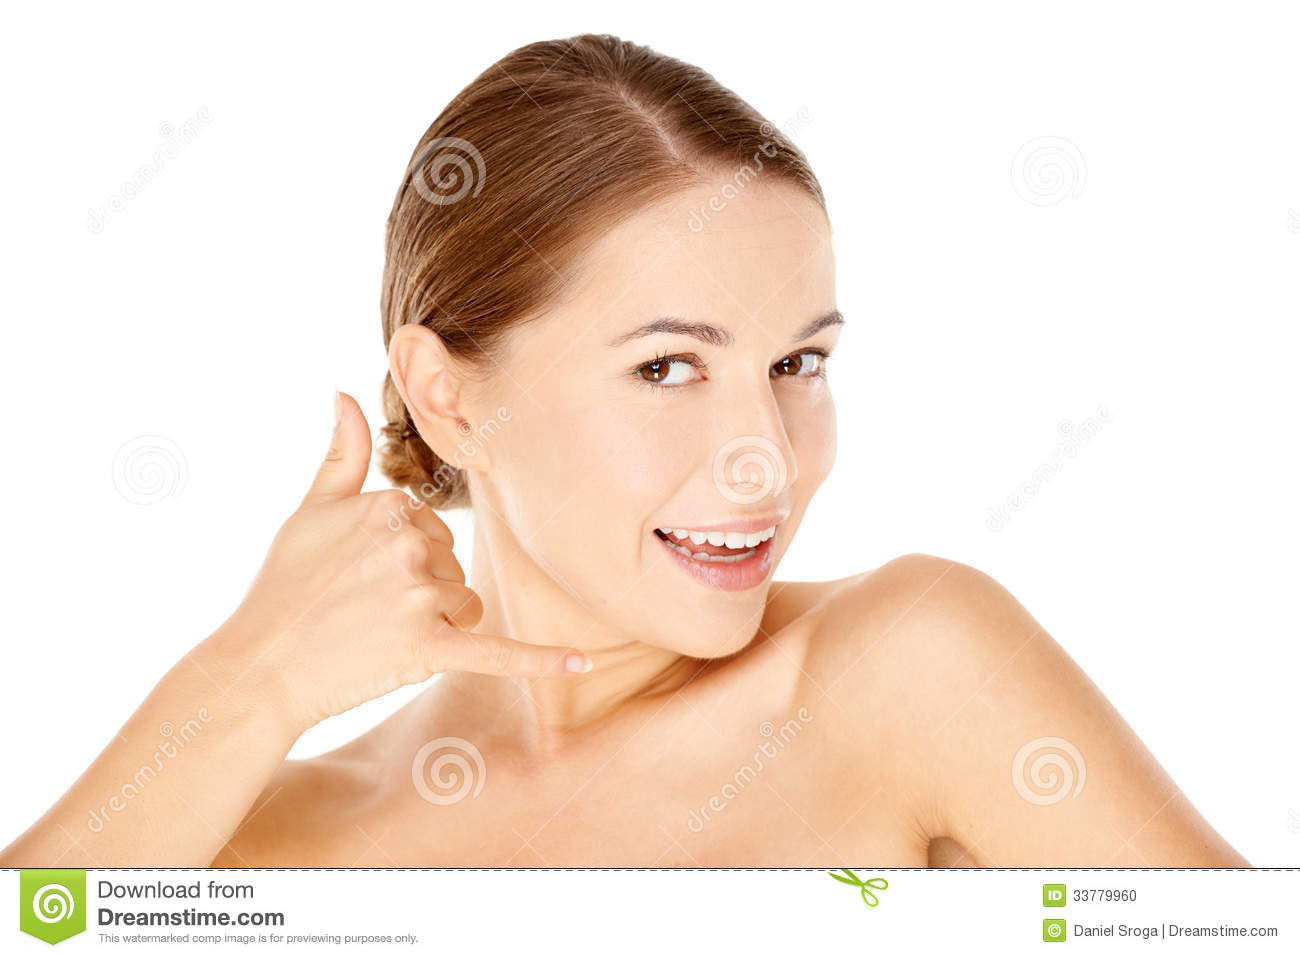 Woman With Call Me Gesture Stock Photo - Image: 33779960